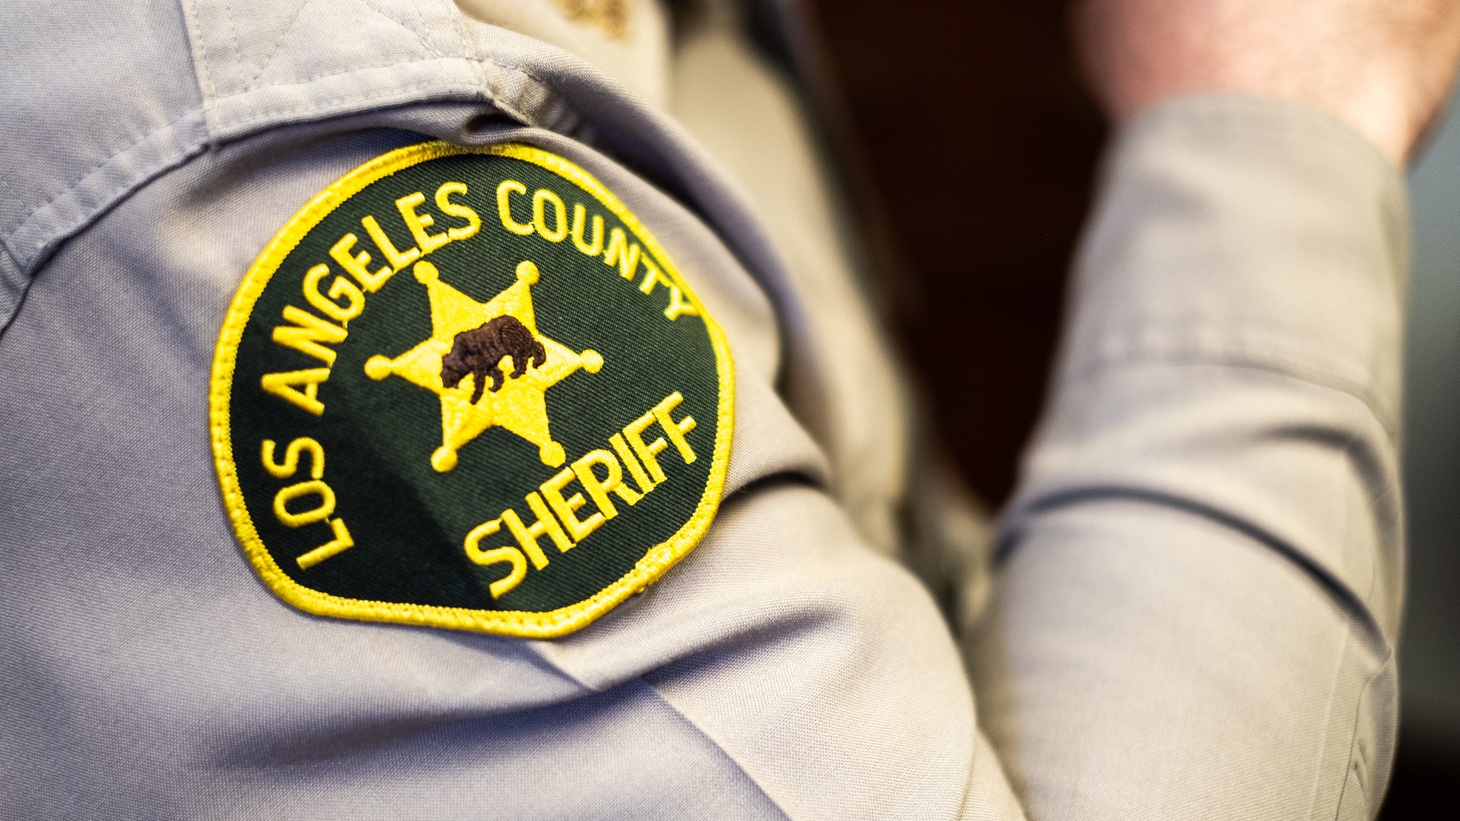 The LA Sheriff's Department is facing big cuts — not because of protests but because of a budget shortfall this year. That plays into the future of a department that's also embroiled in several controversies.